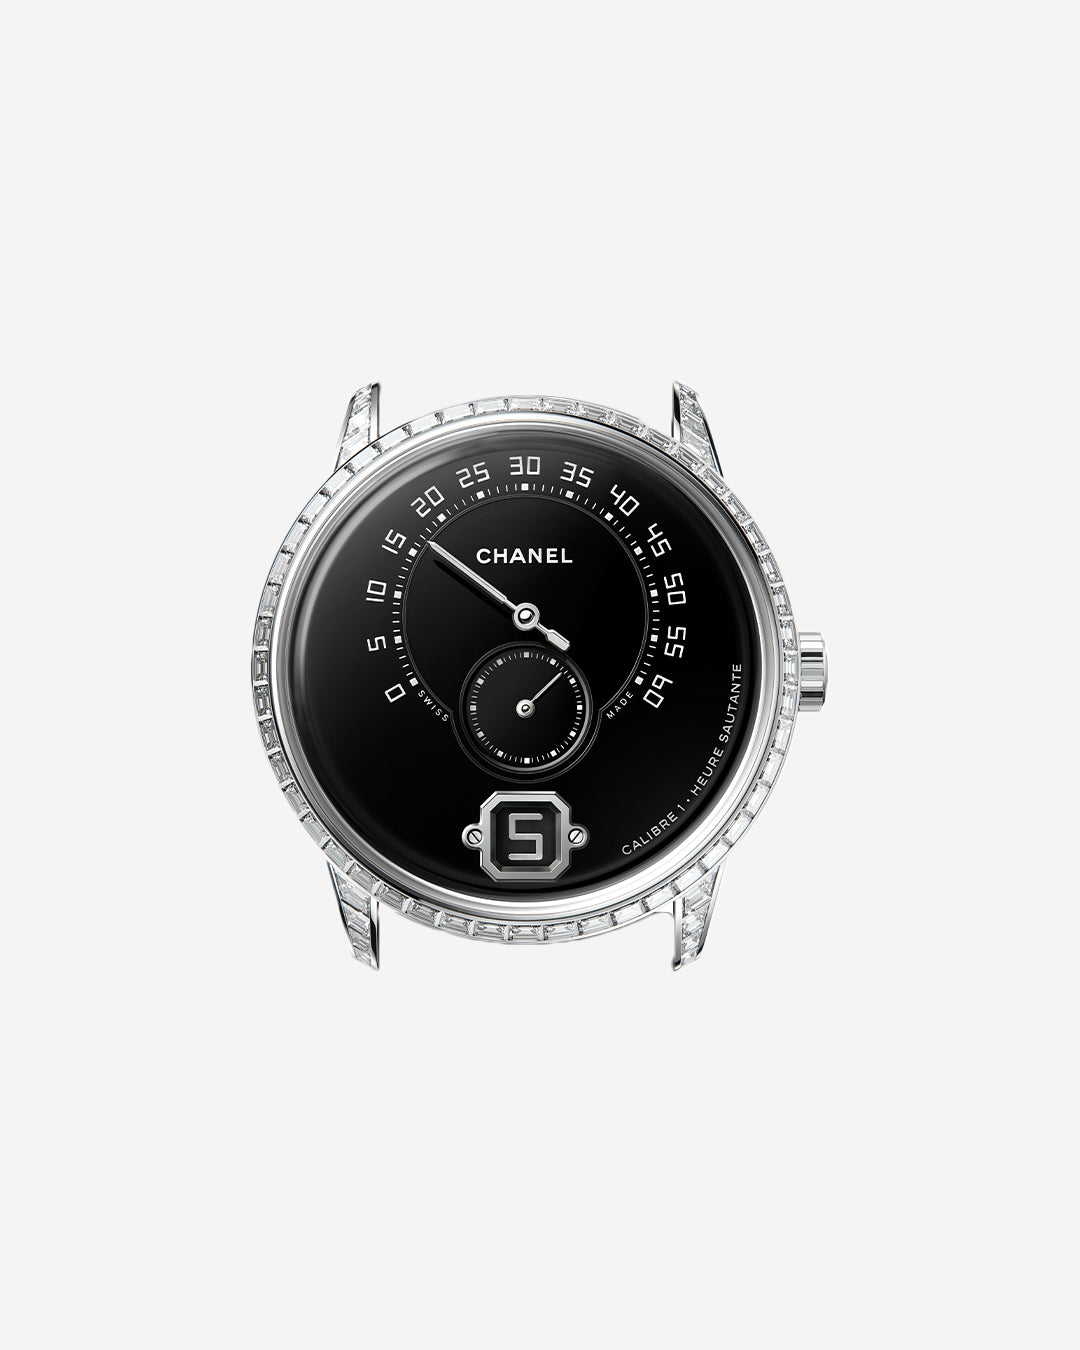 Chanel Monsieur front watch movement in In-house or ébauche, and does it even matter anymore? For A Collected Man London